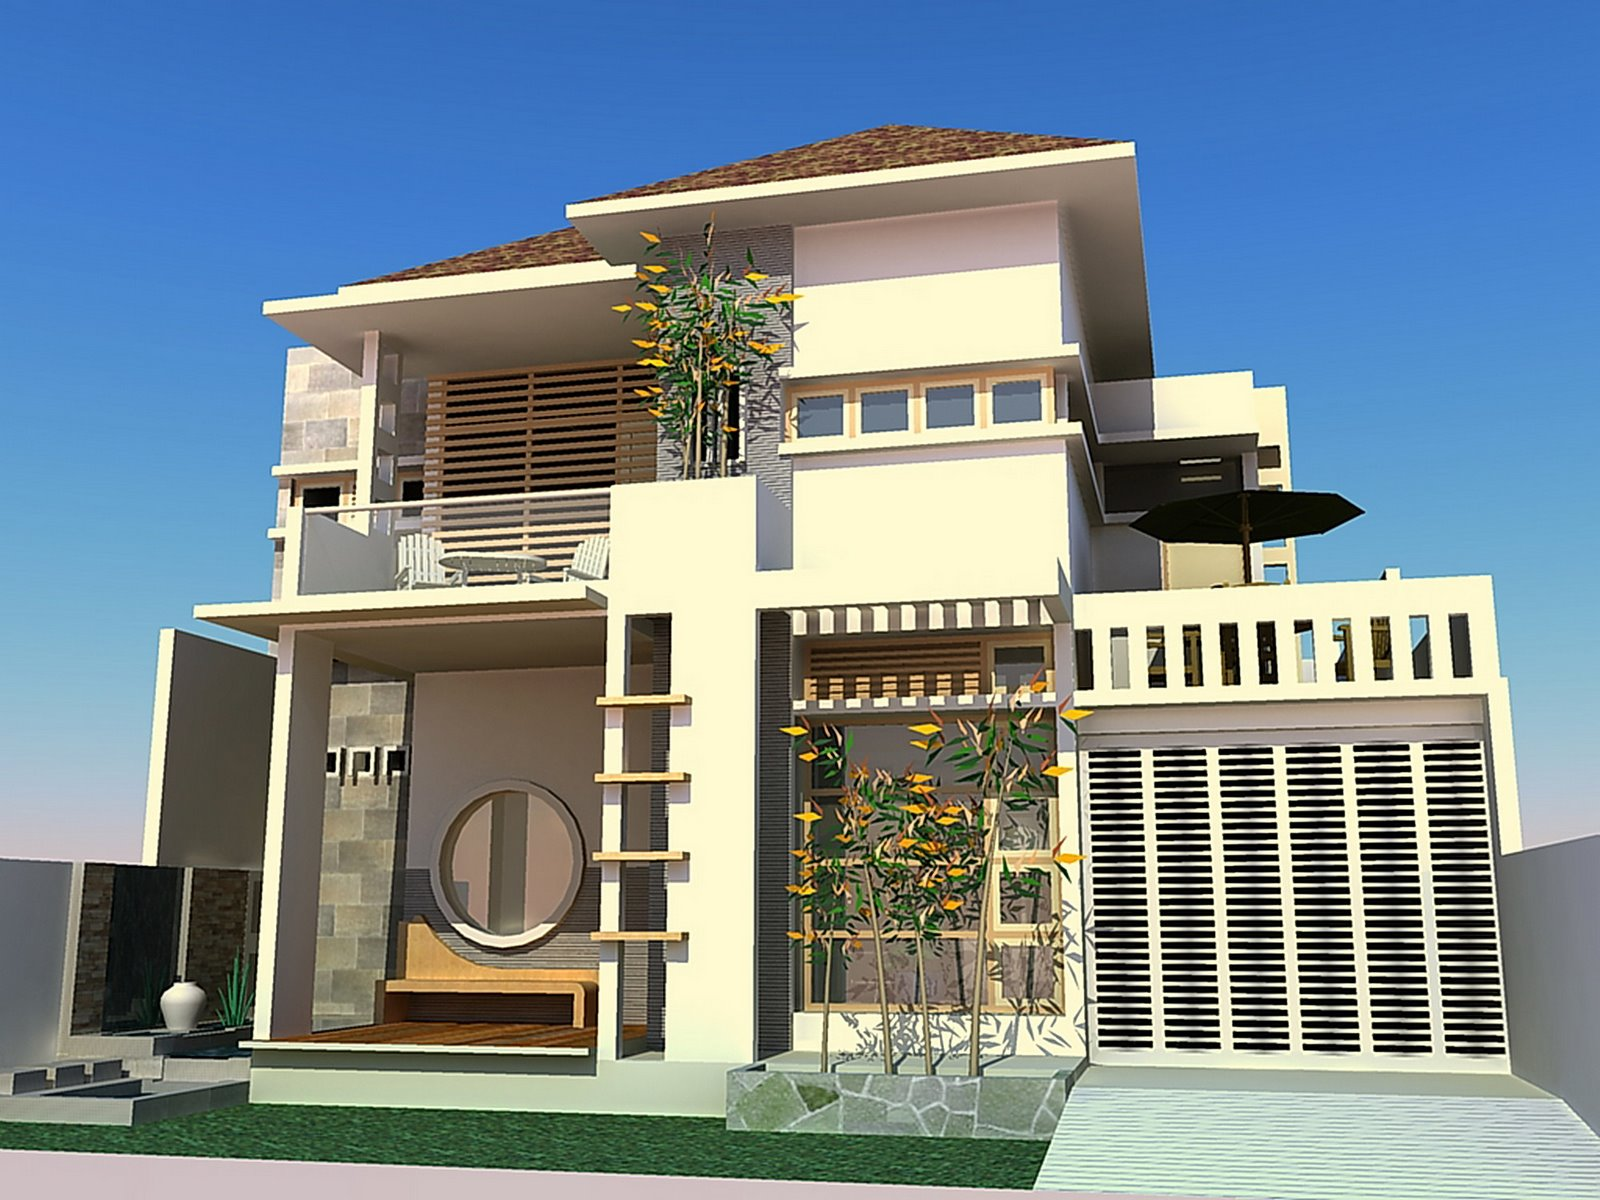 New home designs latest.: Modern homes front designs Florida.